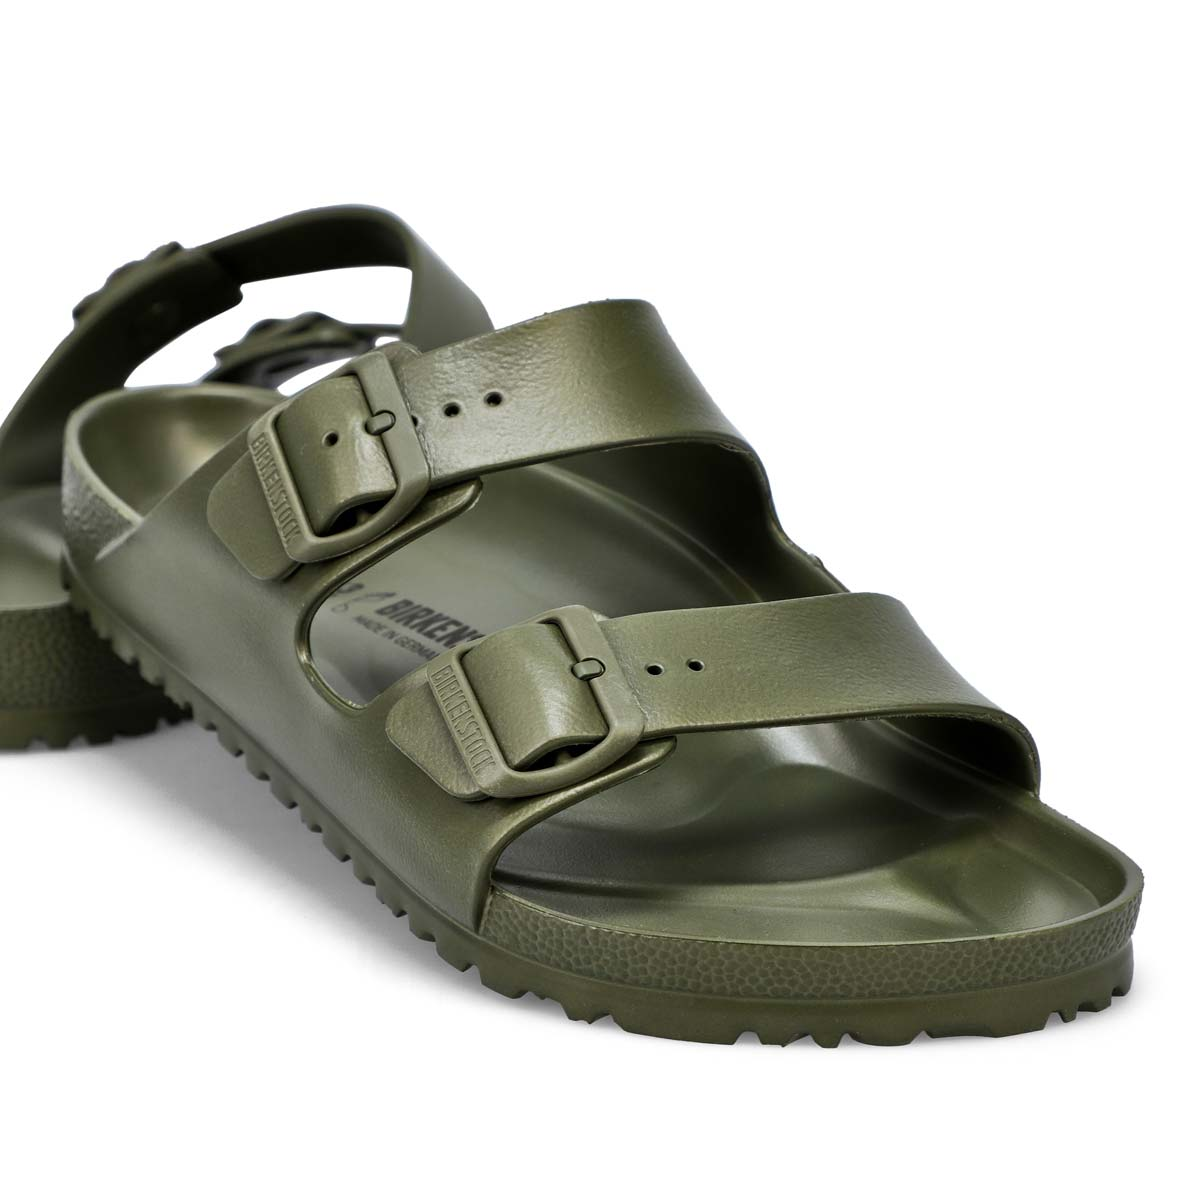 Mens' Arizona EVA Sandals - Green